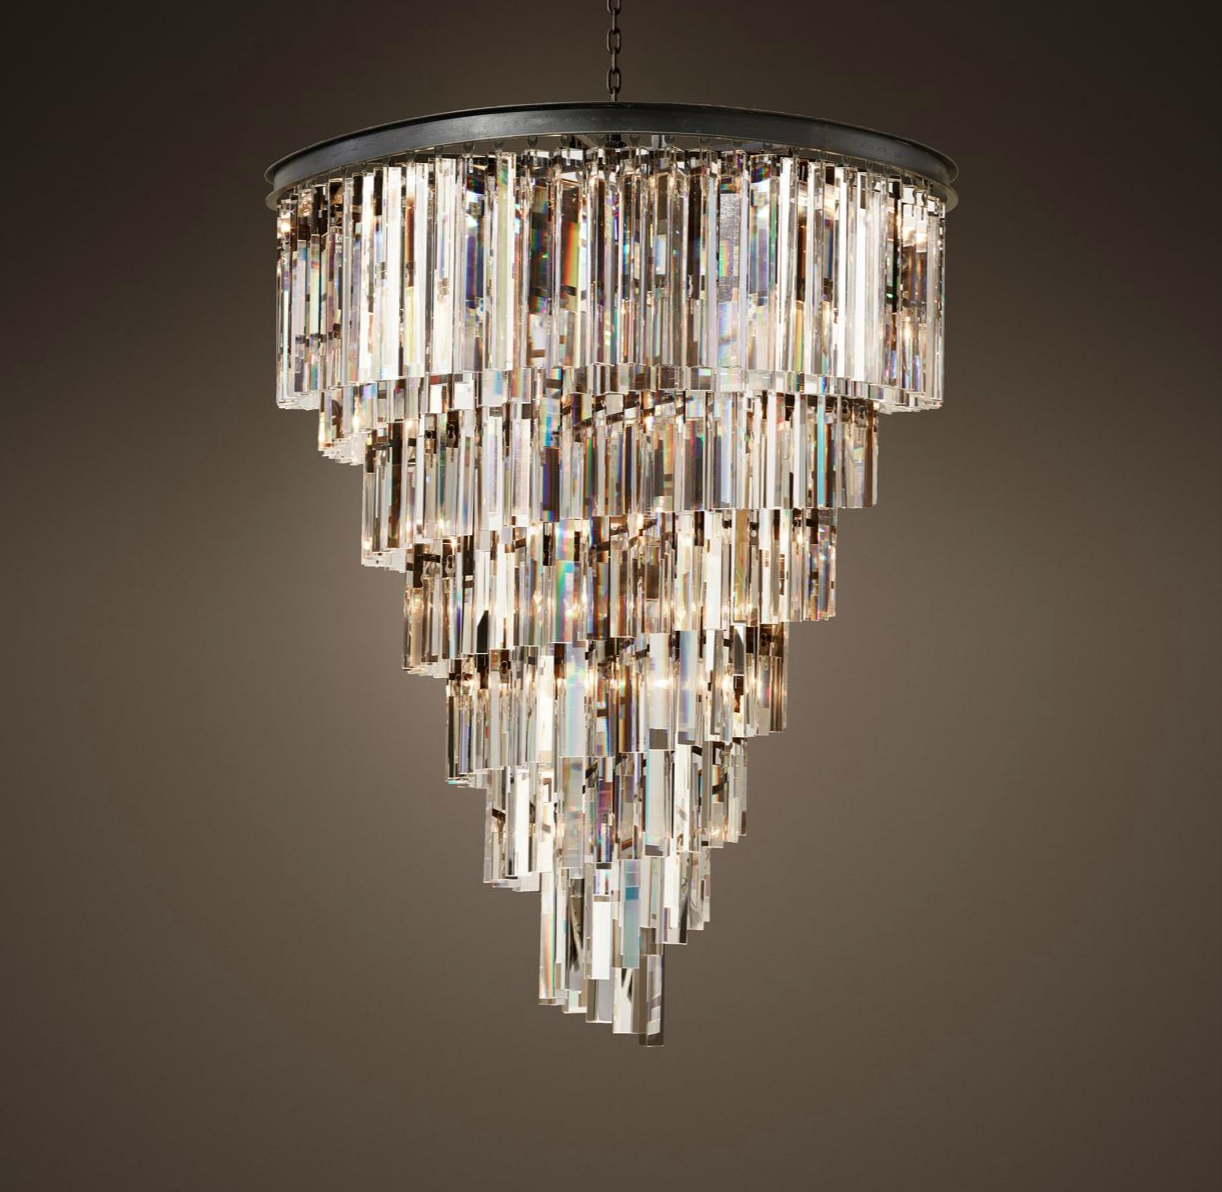 Elegant chandelier by Restoration Hardware